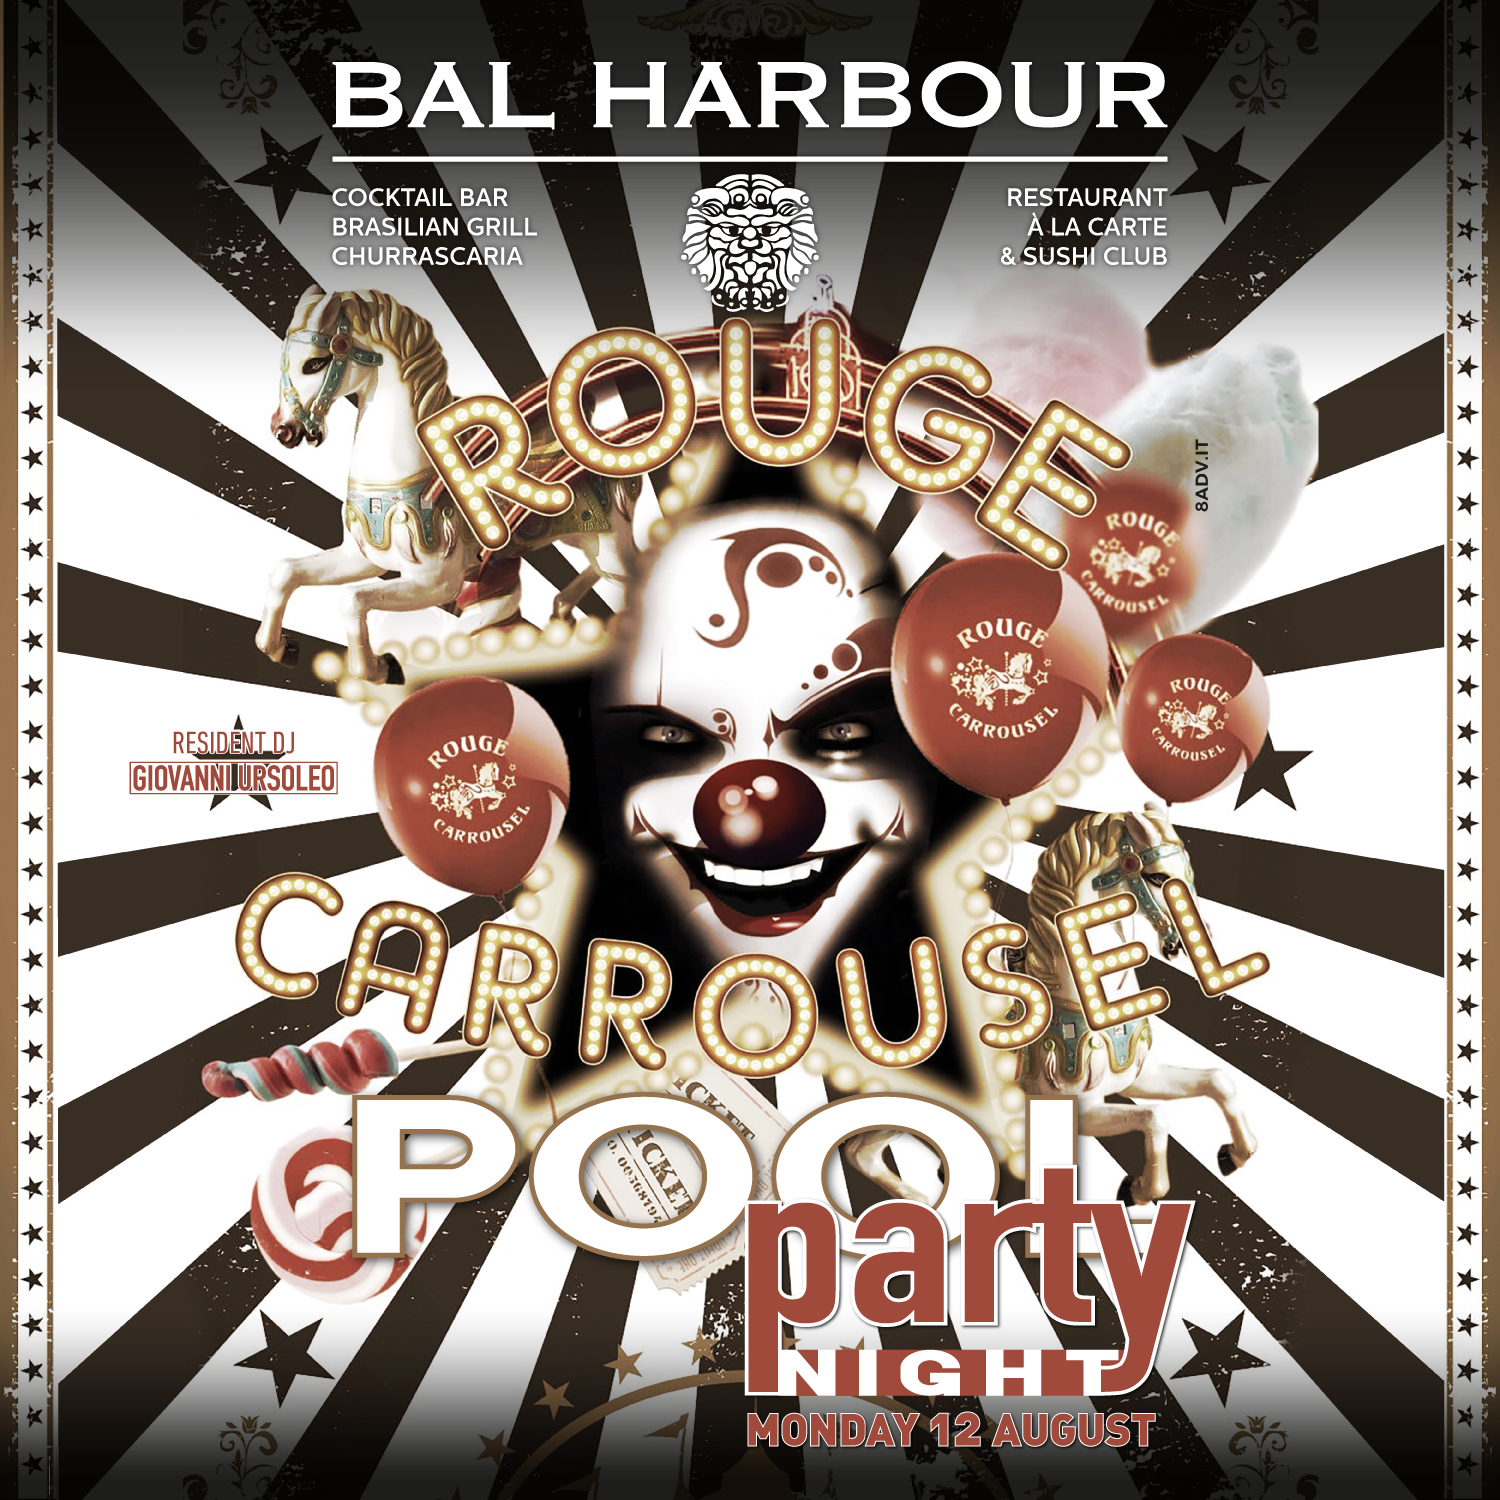 rouge carrousel pool party bal harbour san teodoro